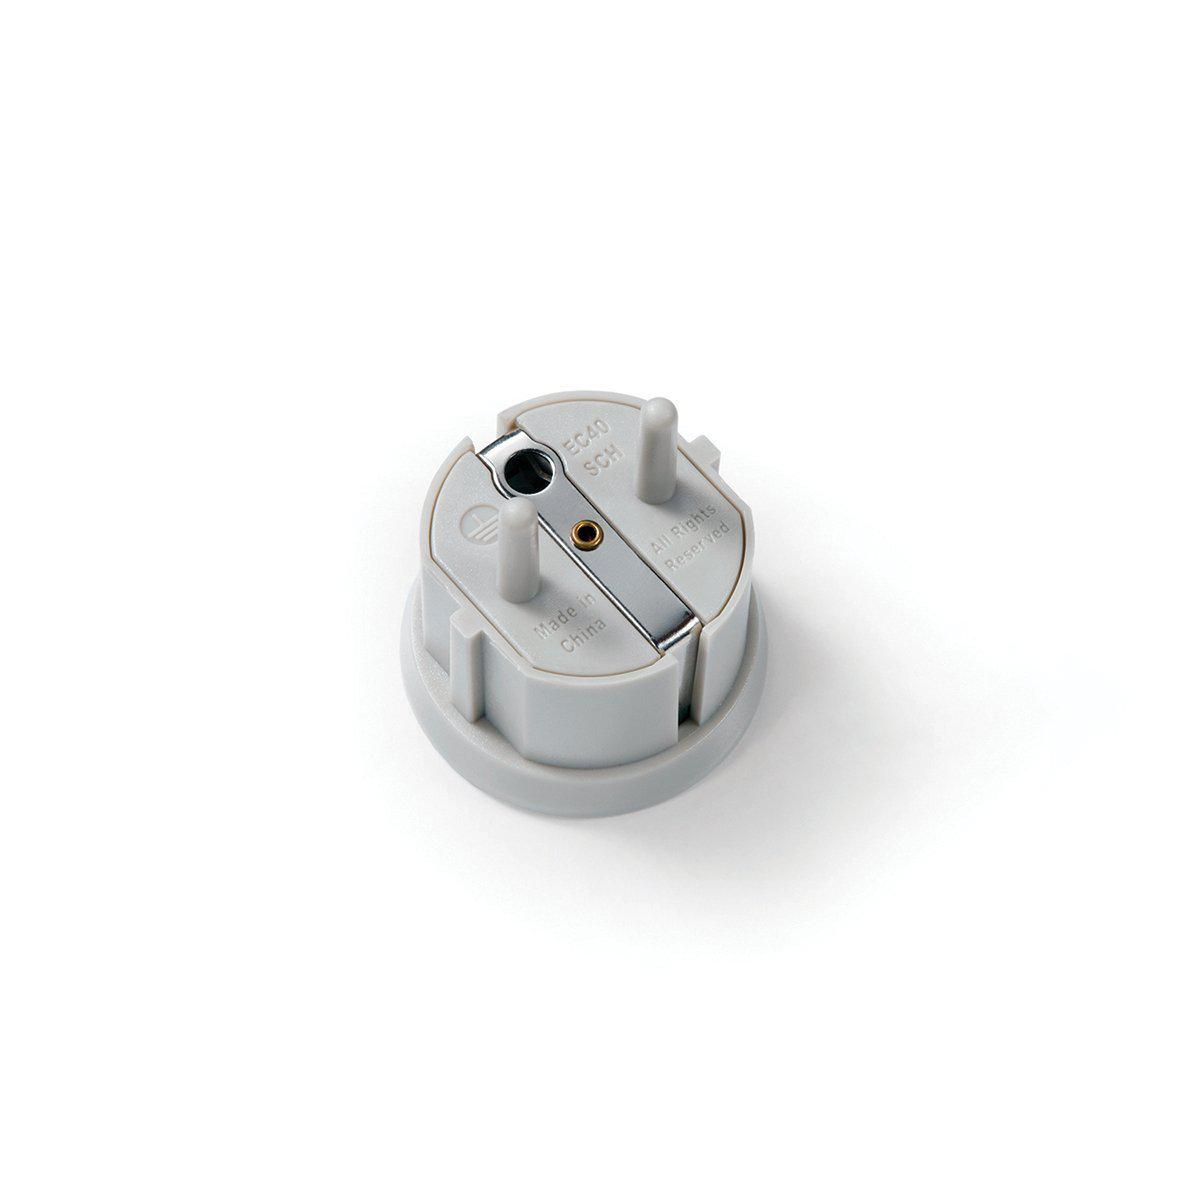 Outlet Adapter Europe (1908317814897)